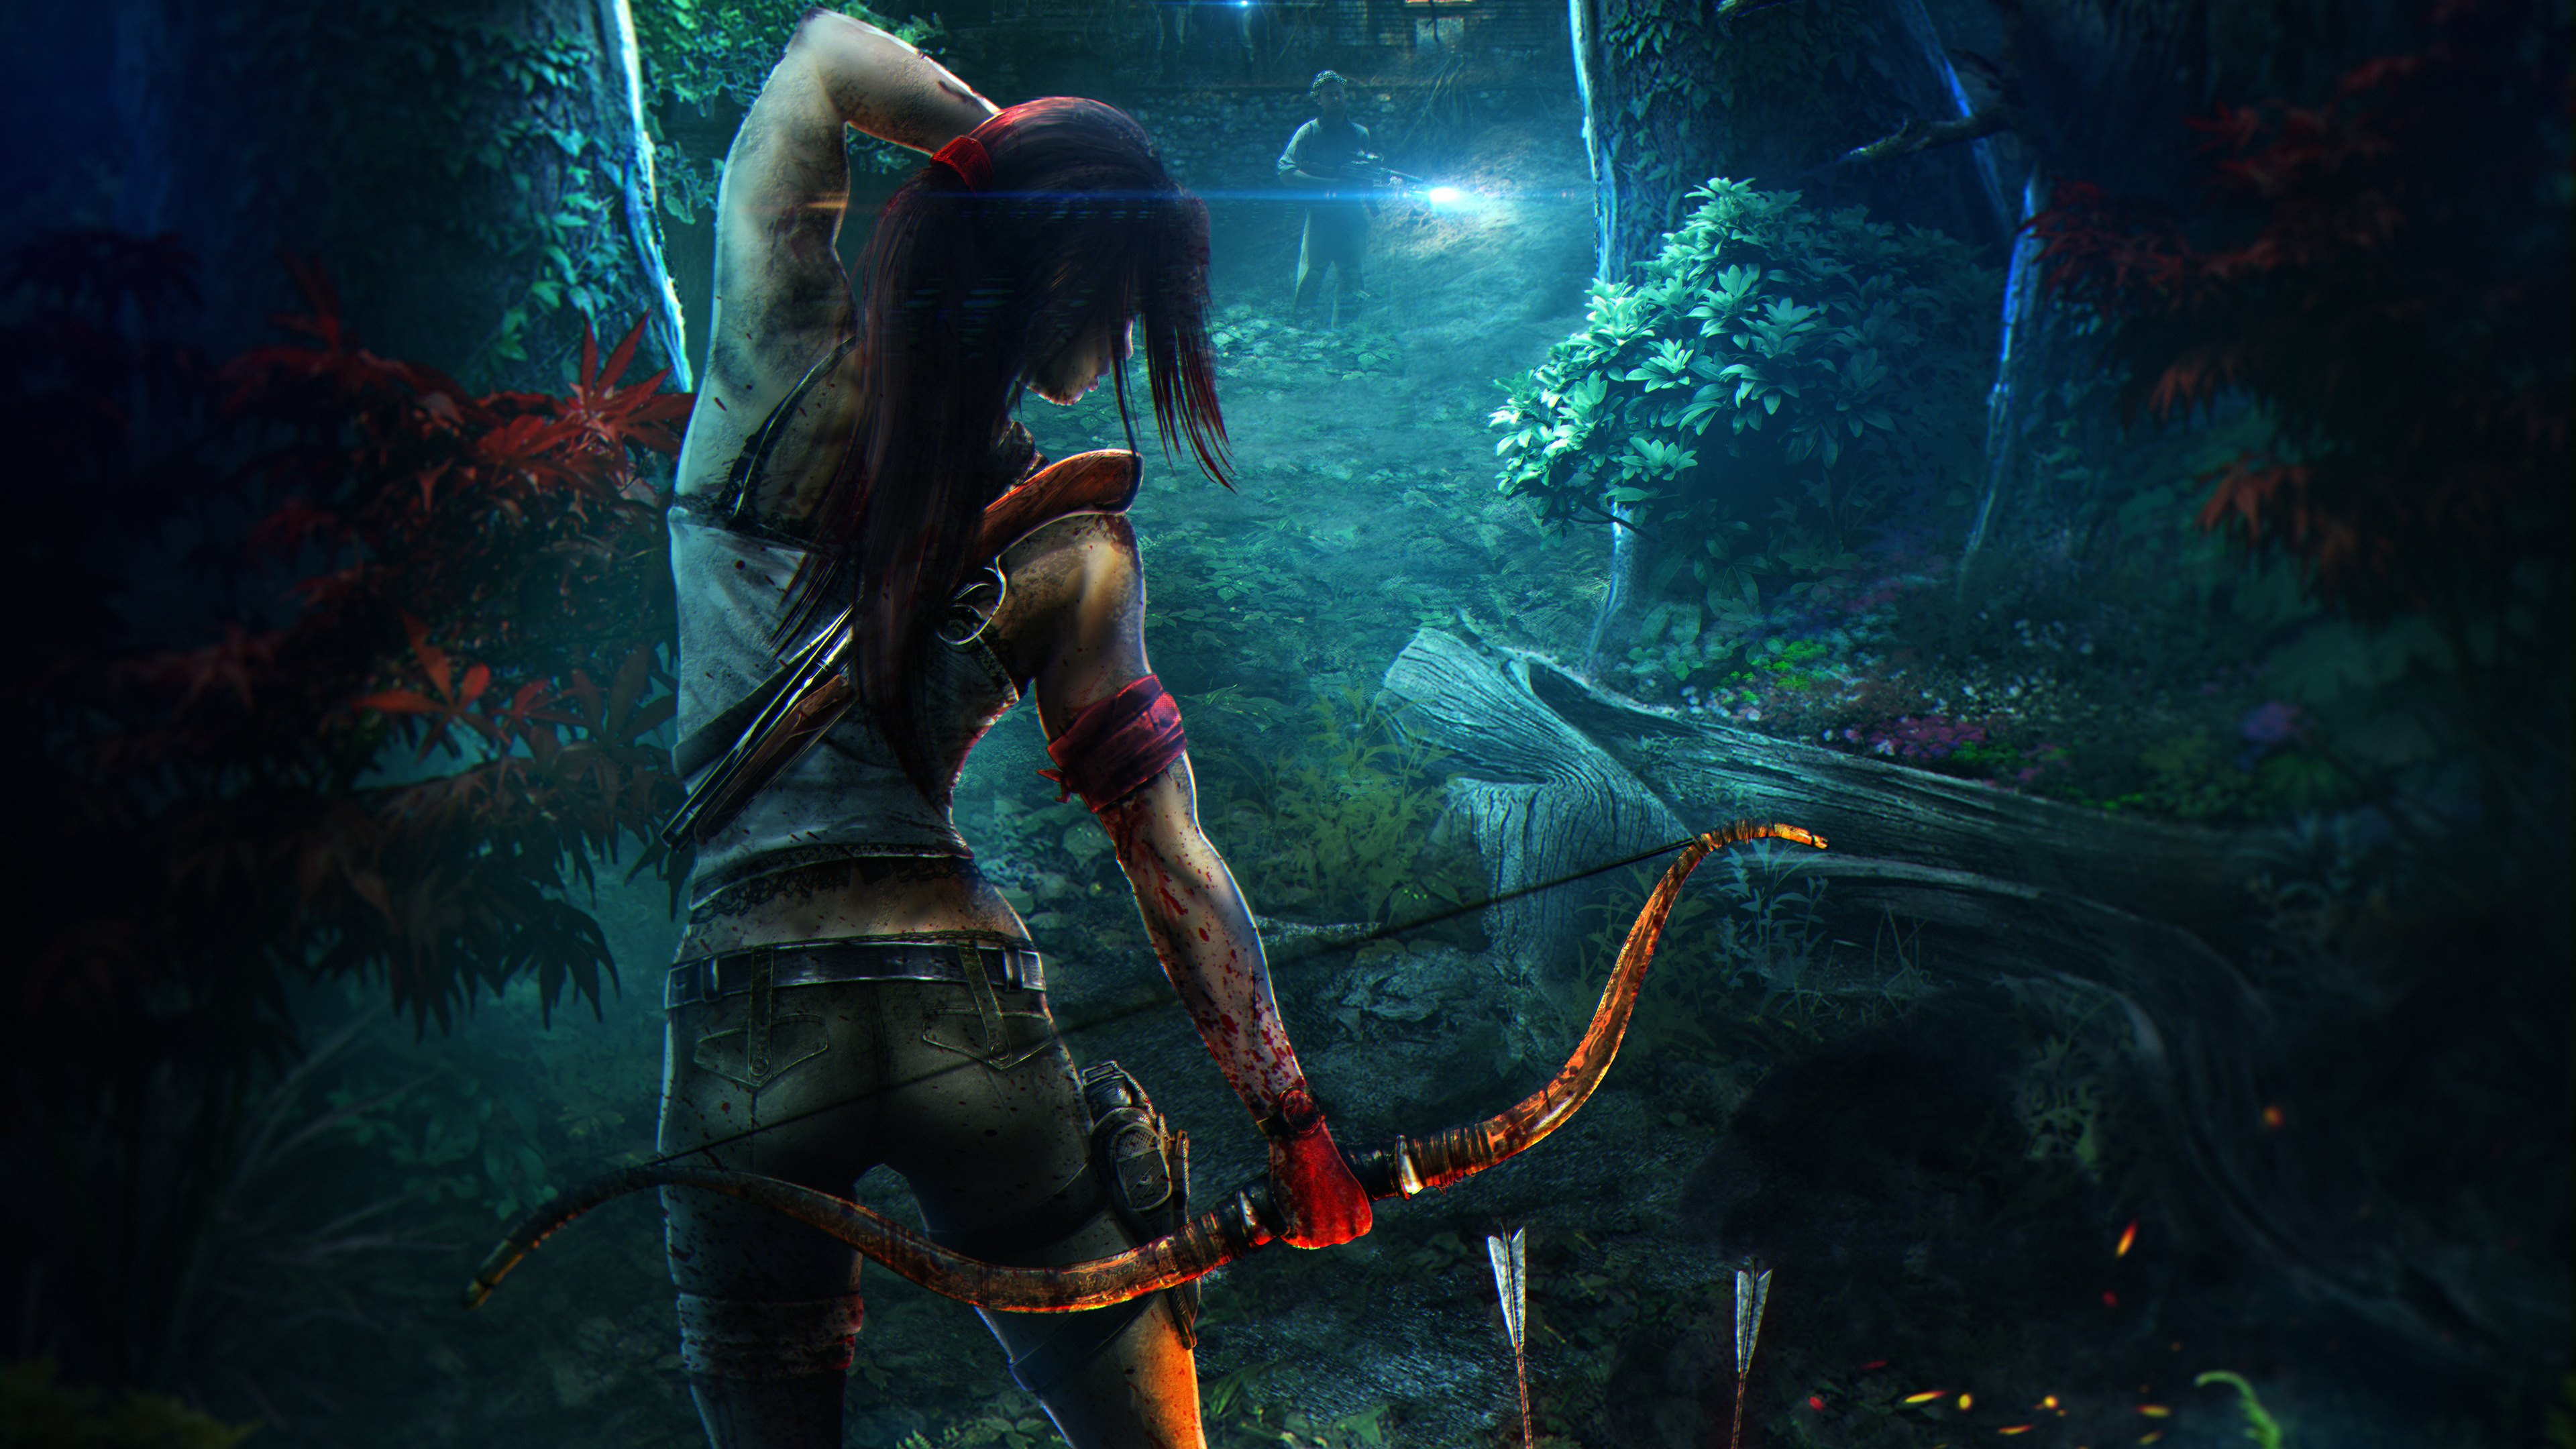 tomb raider reborn art wallpapers - Tomb Raider Reborn Art Wallpapers HD Wallpapers